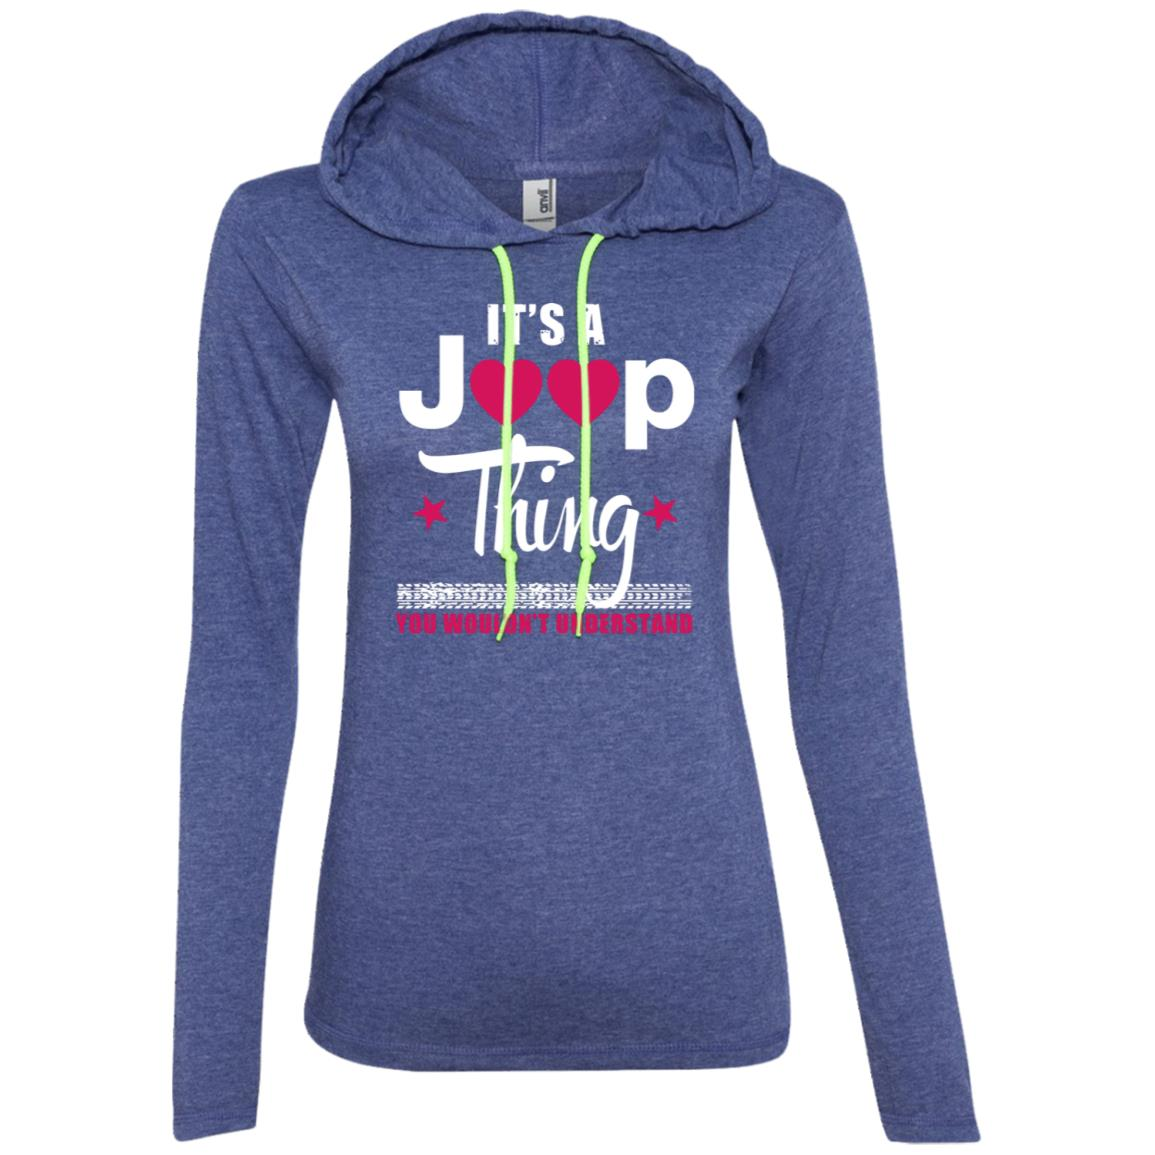 It's A Jeep Thing Ladies' T-Shirt Hoodie